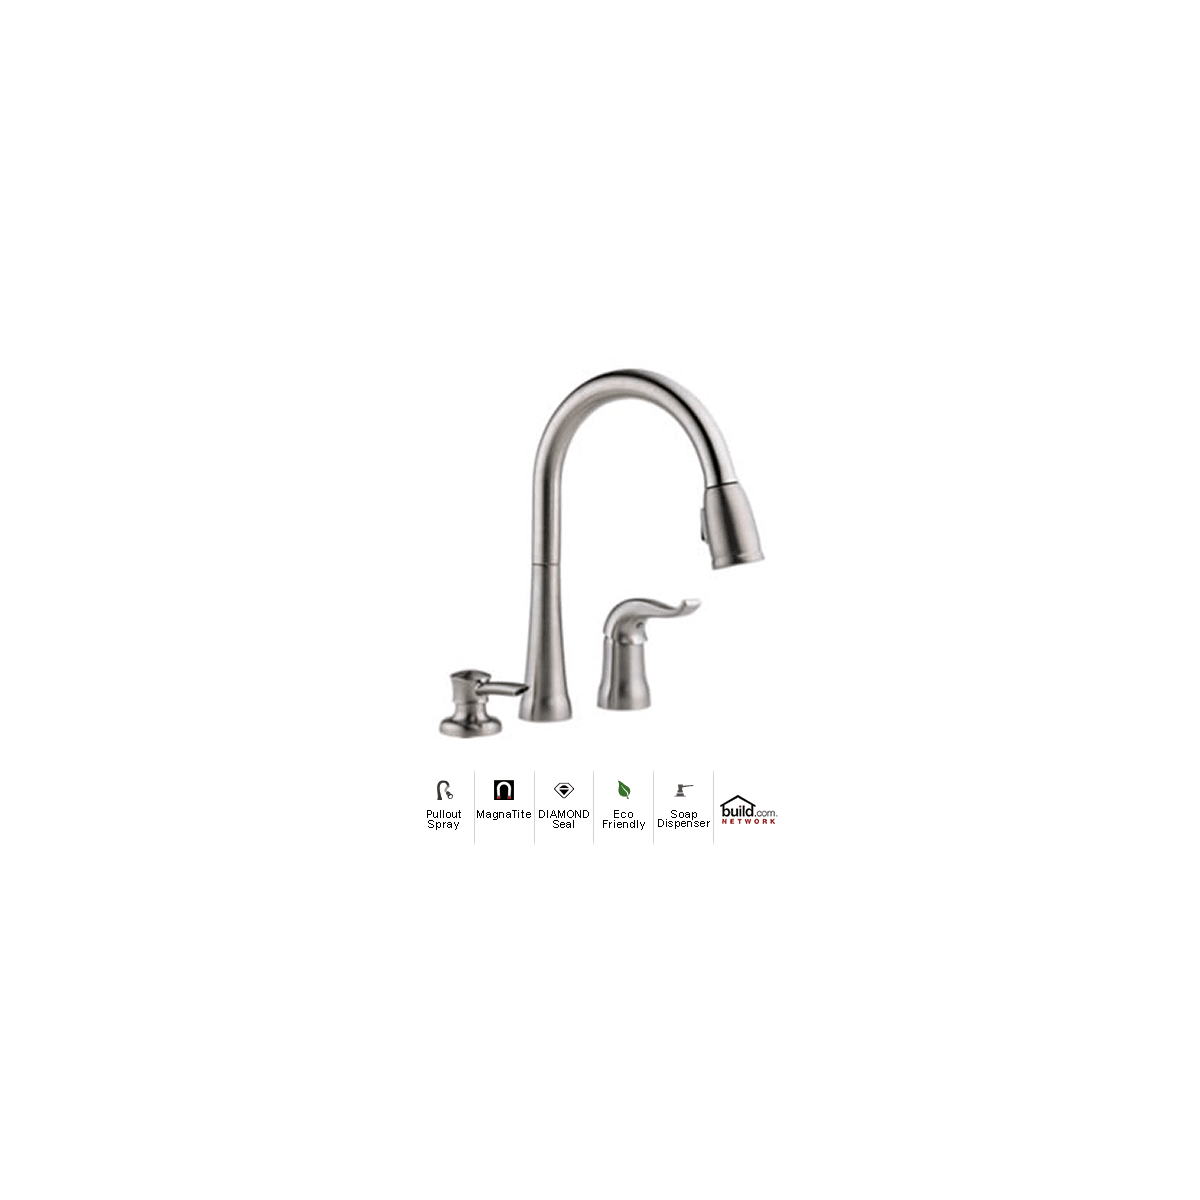 Delta 16970 Sssd Dst Brilliance Stainless Kate Pullout Spray Kitchen Faucet With Magnatite Docking Diamond Seal And Touch Clean Technologies Includes Soap Dispenser Faucetdirect Com